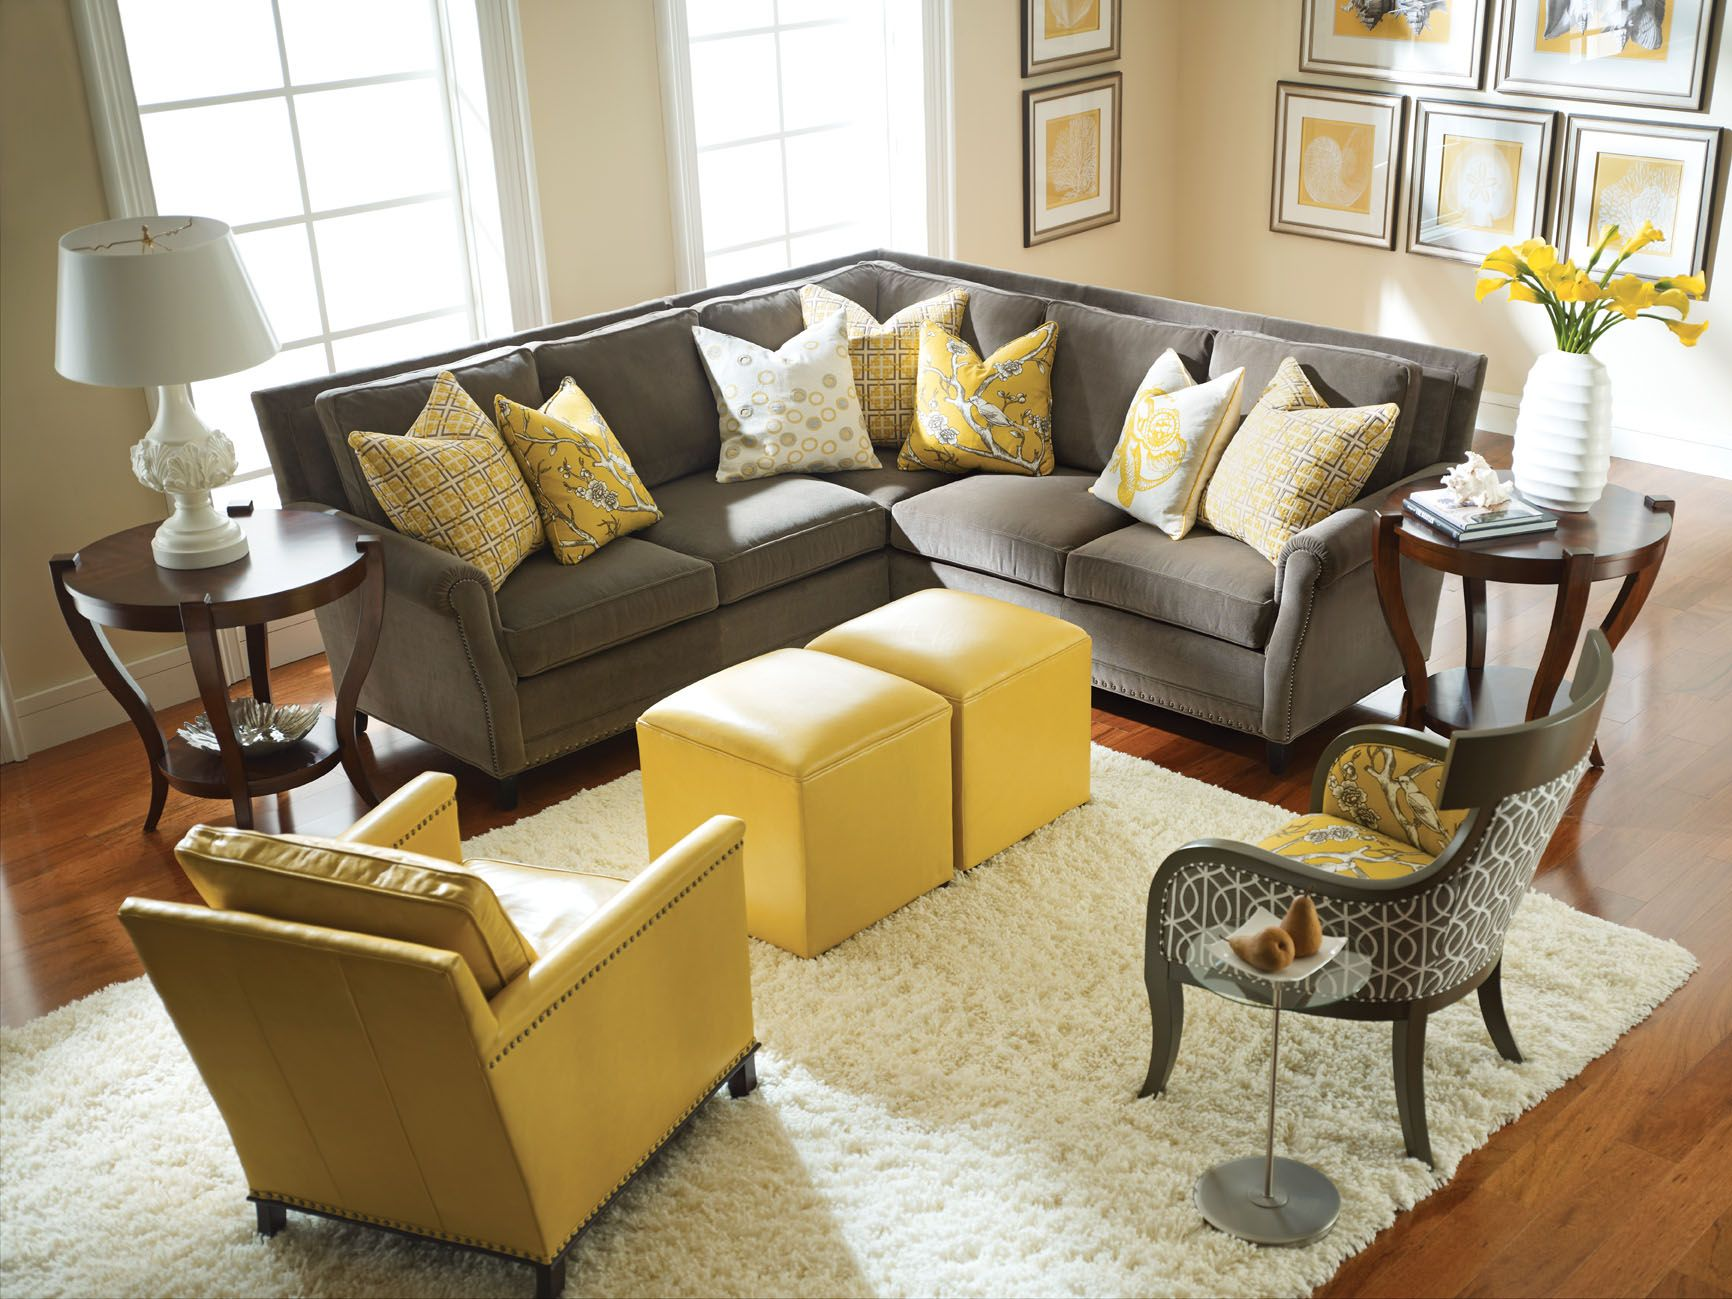 Color Scheme Inspo Yellow Walls Brown And Gray Furniture Yellow Decor Living Room Living Room Decor Gray Living Room Decor Yellow And Grey